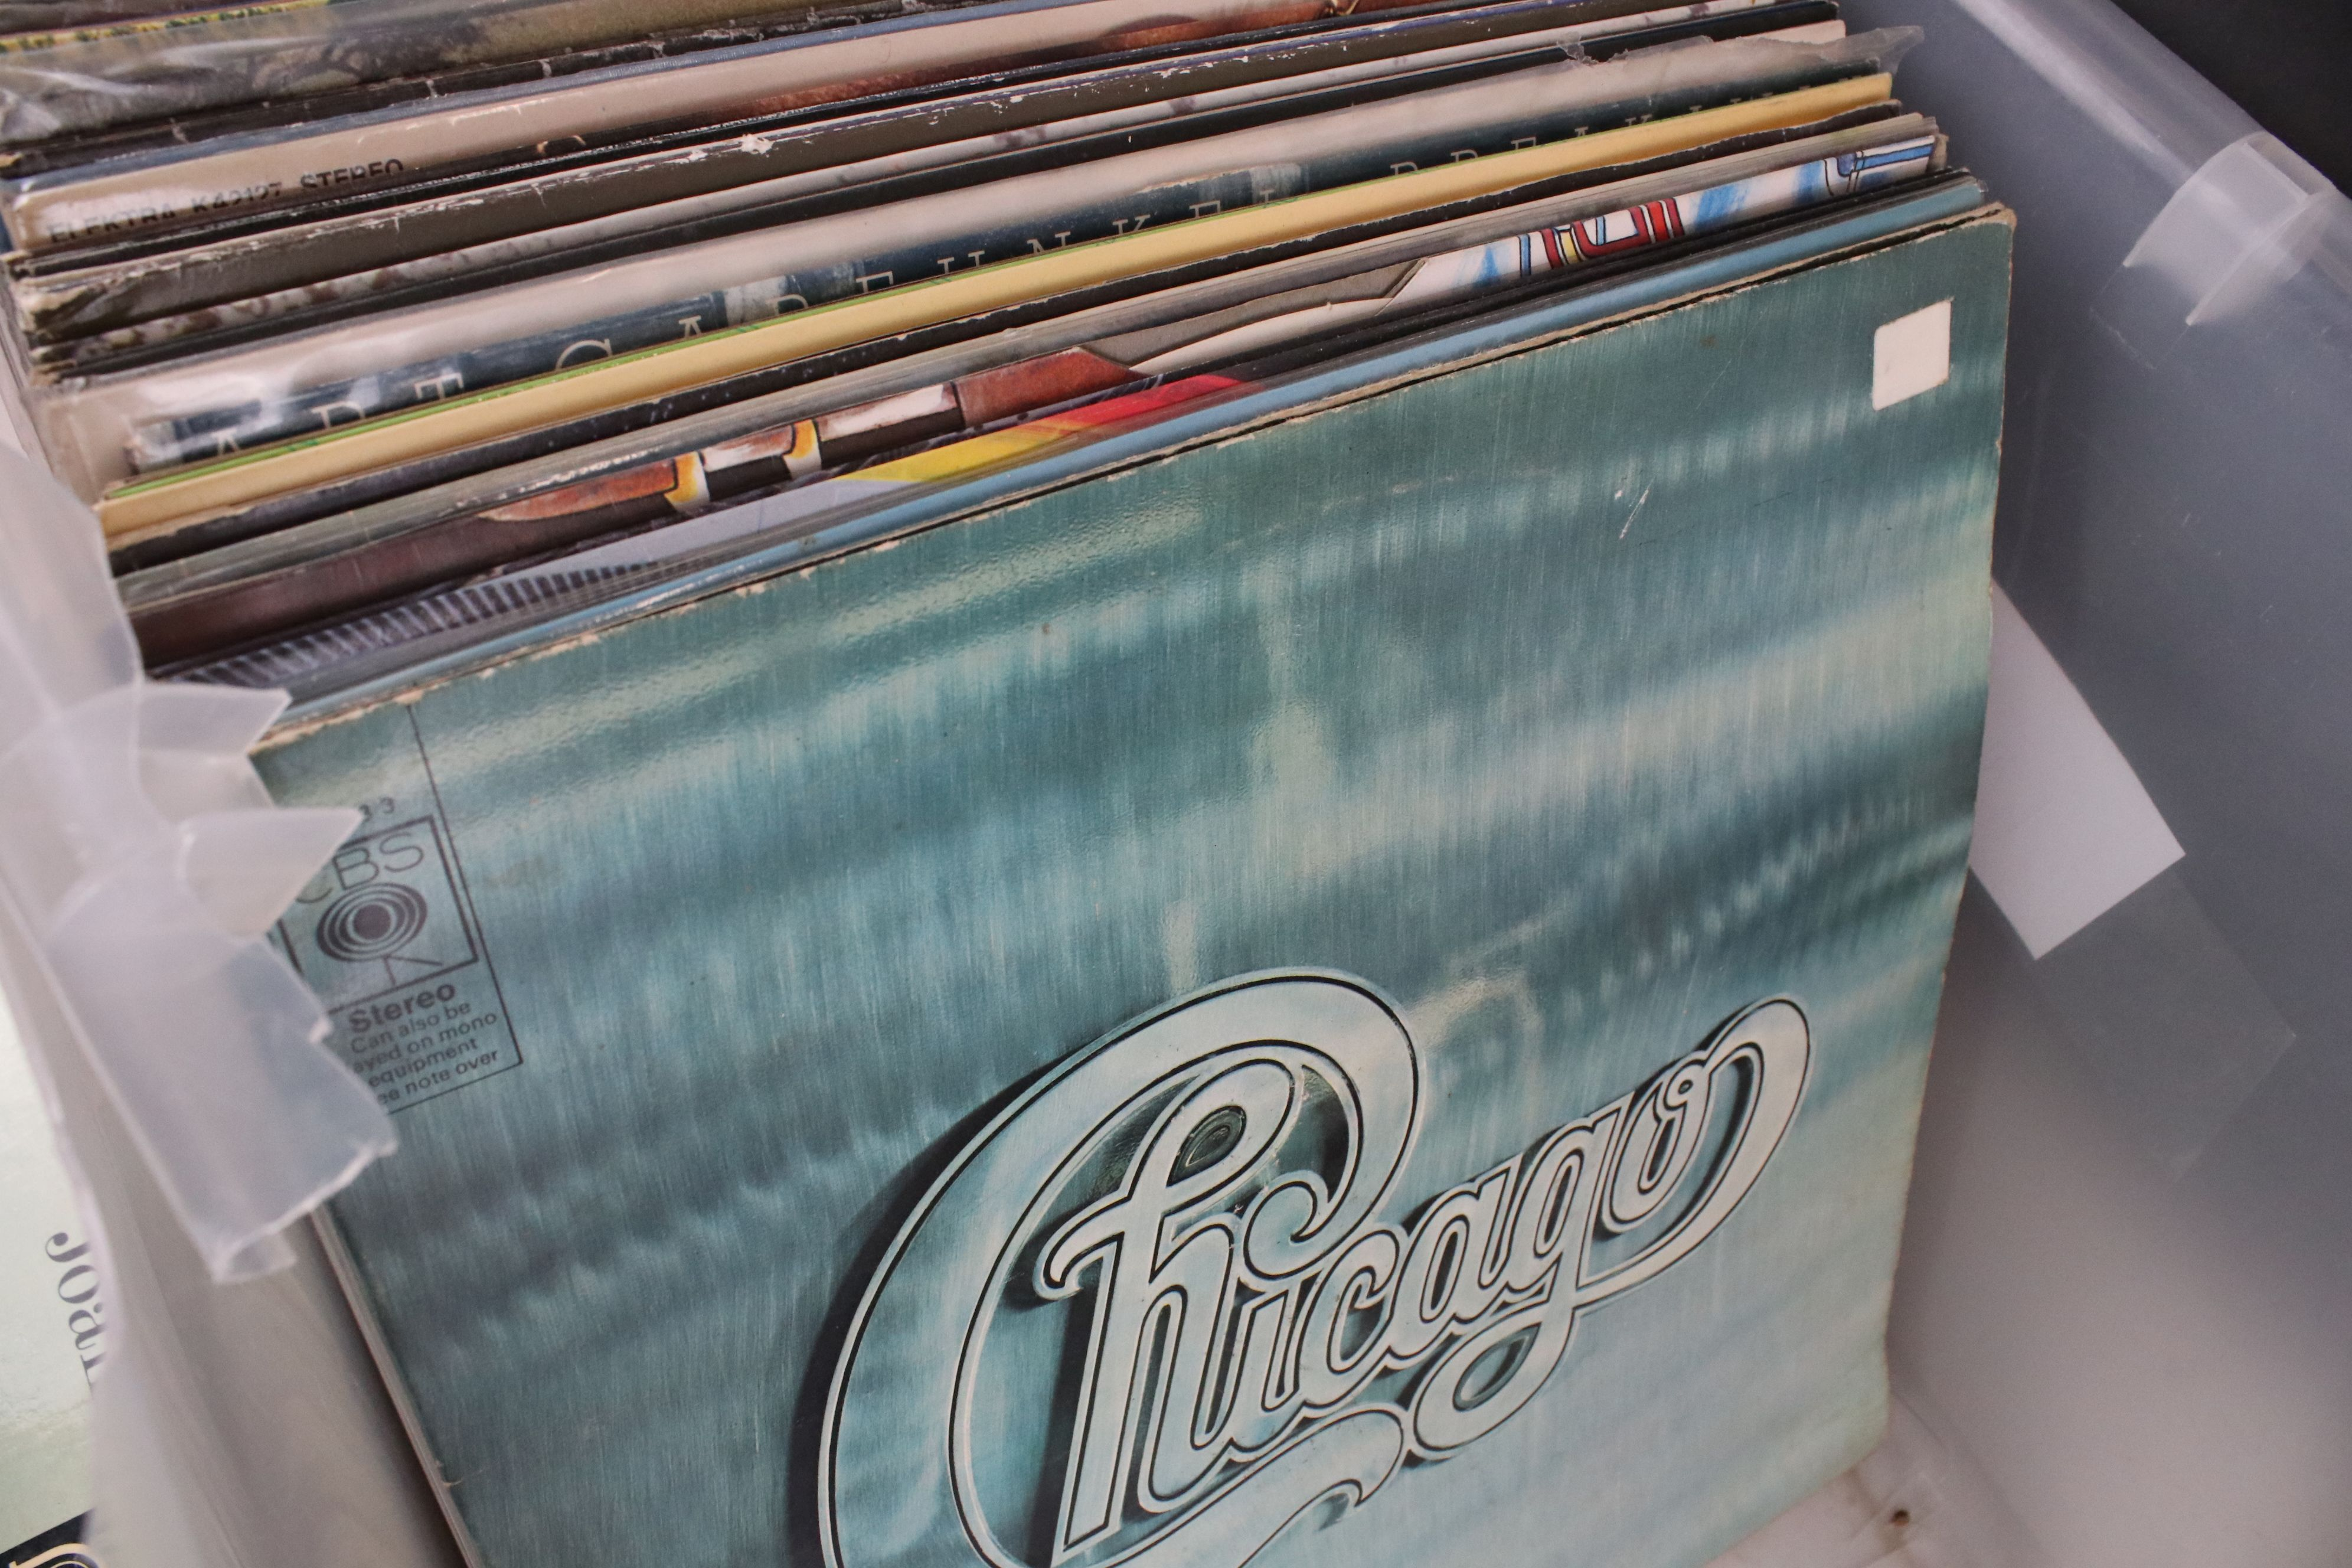 """Vinyl - Around 60 Pop and Rock LPs to include some 7"""" singles, artists feature The Eagles, ELP, Mike - Image 4 of 12"""